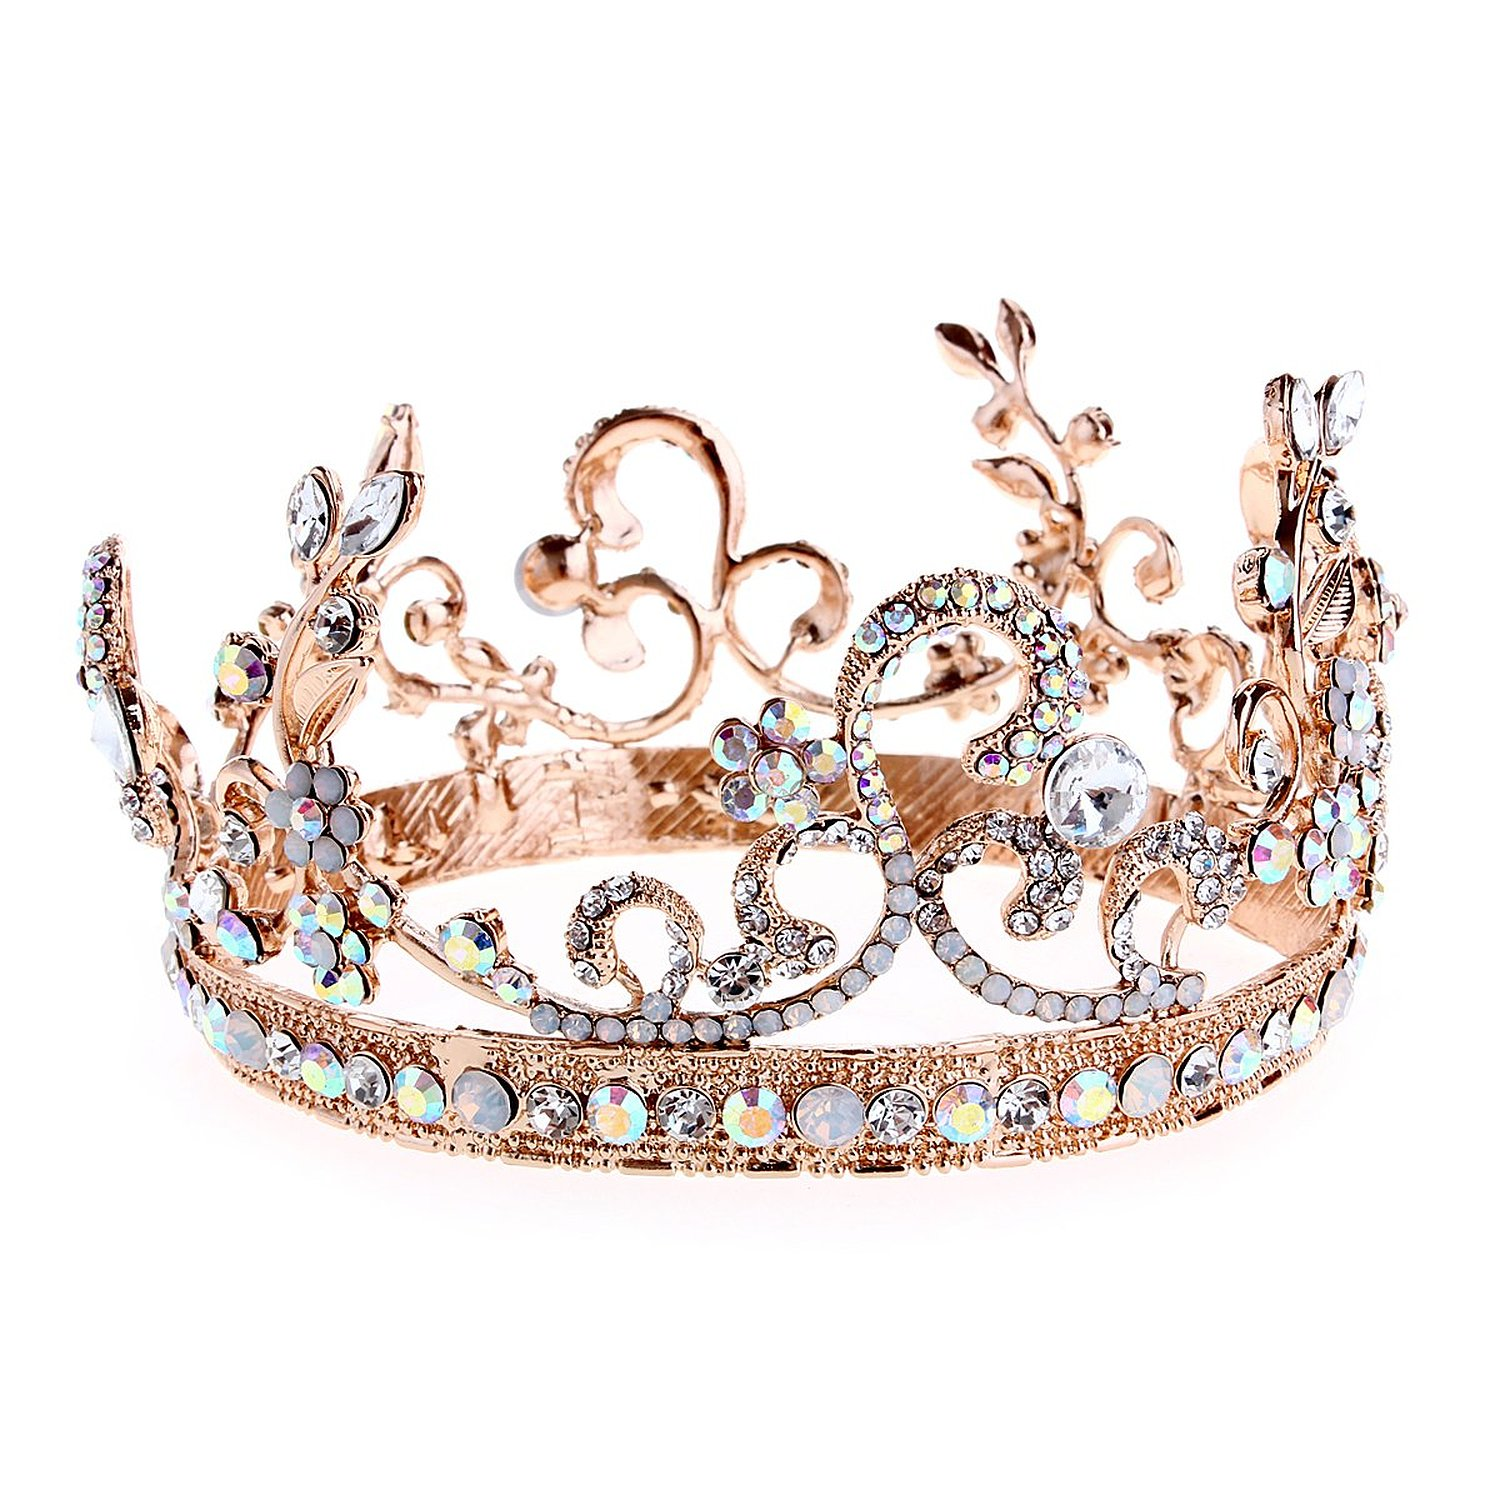 Crazy Genie Bridal Crystal Tiara Crowns Princess Queen Pageant Prom Rhinestone Headband Wedding Hair Accessory (Colorful Rhinestones) at Amazon Women's Clothing store